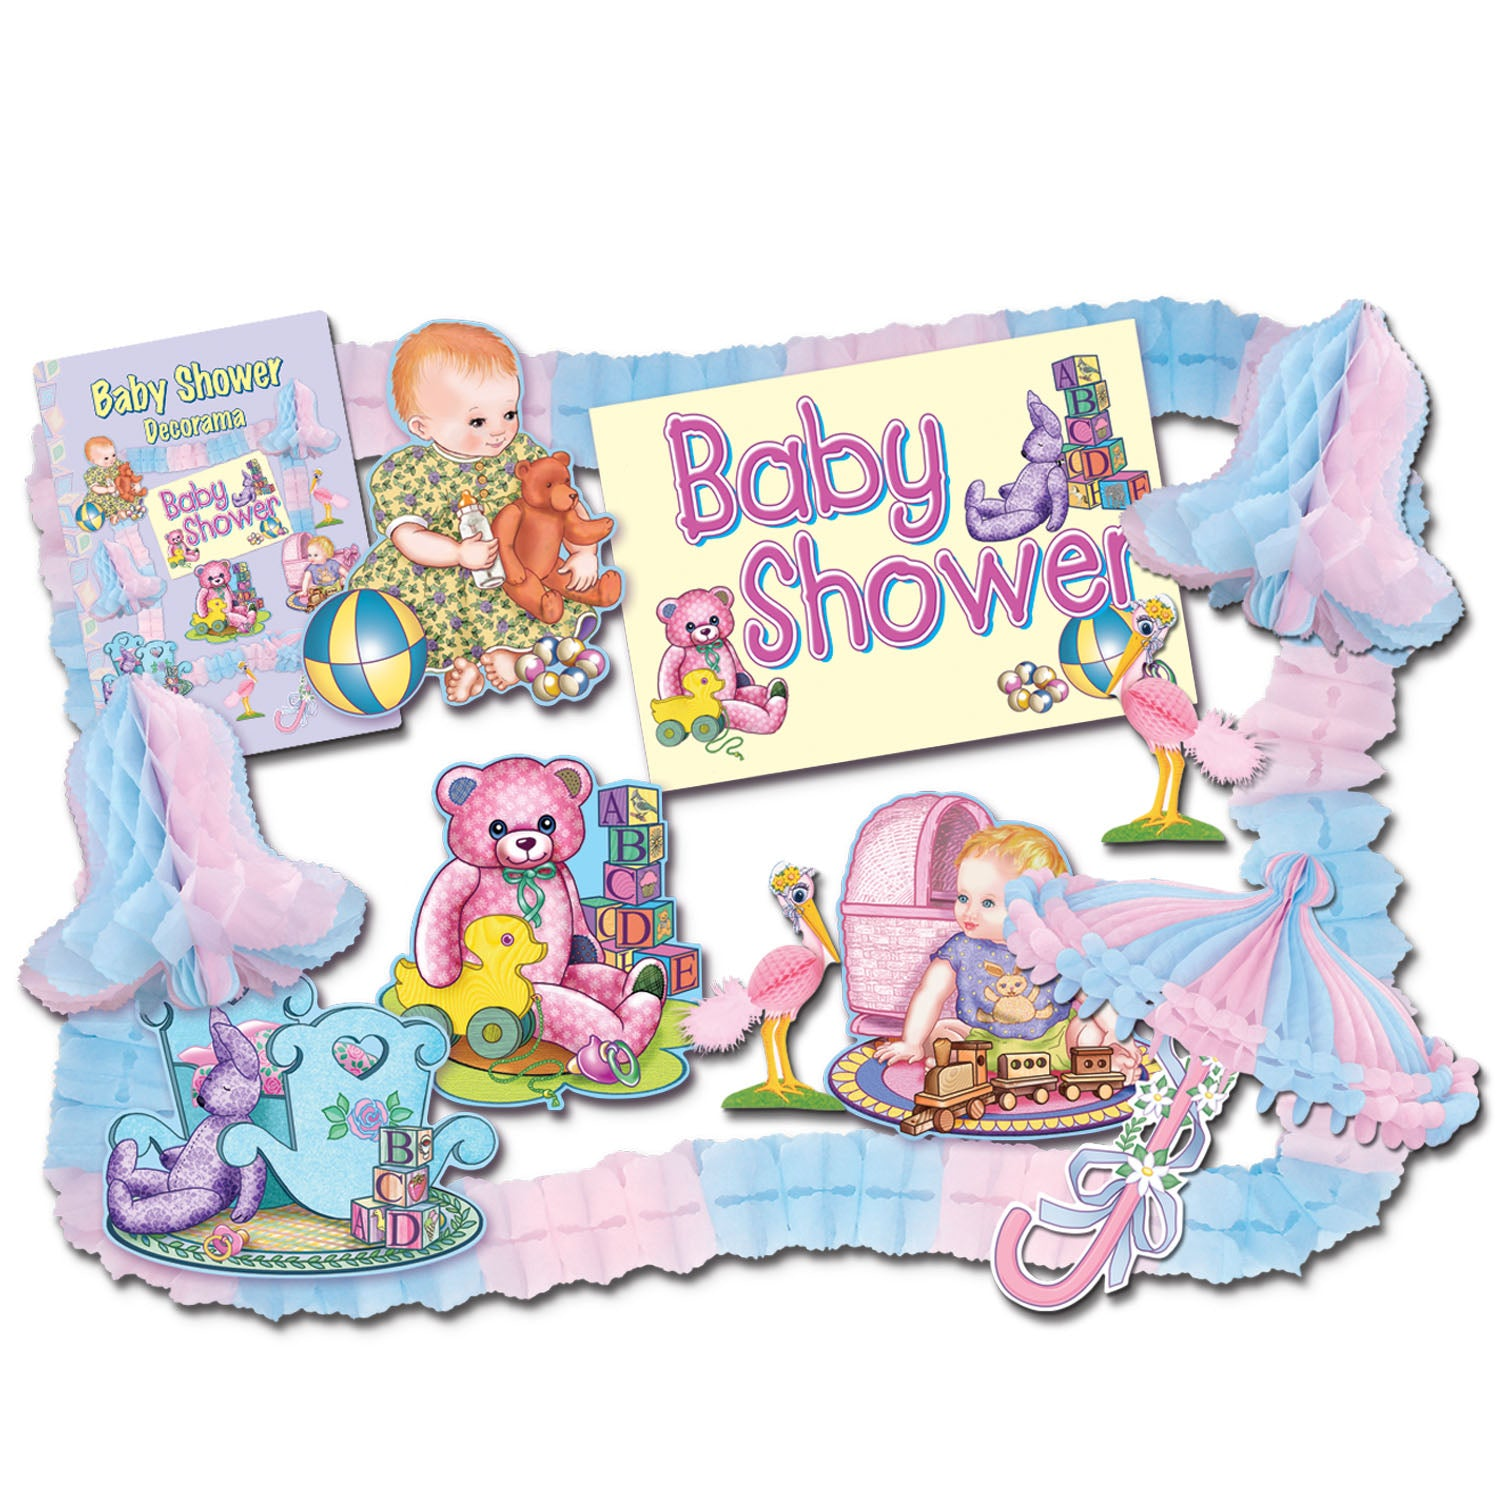 Baby Shower Party Kit by Beistle - Baby Shower Theme Decorations